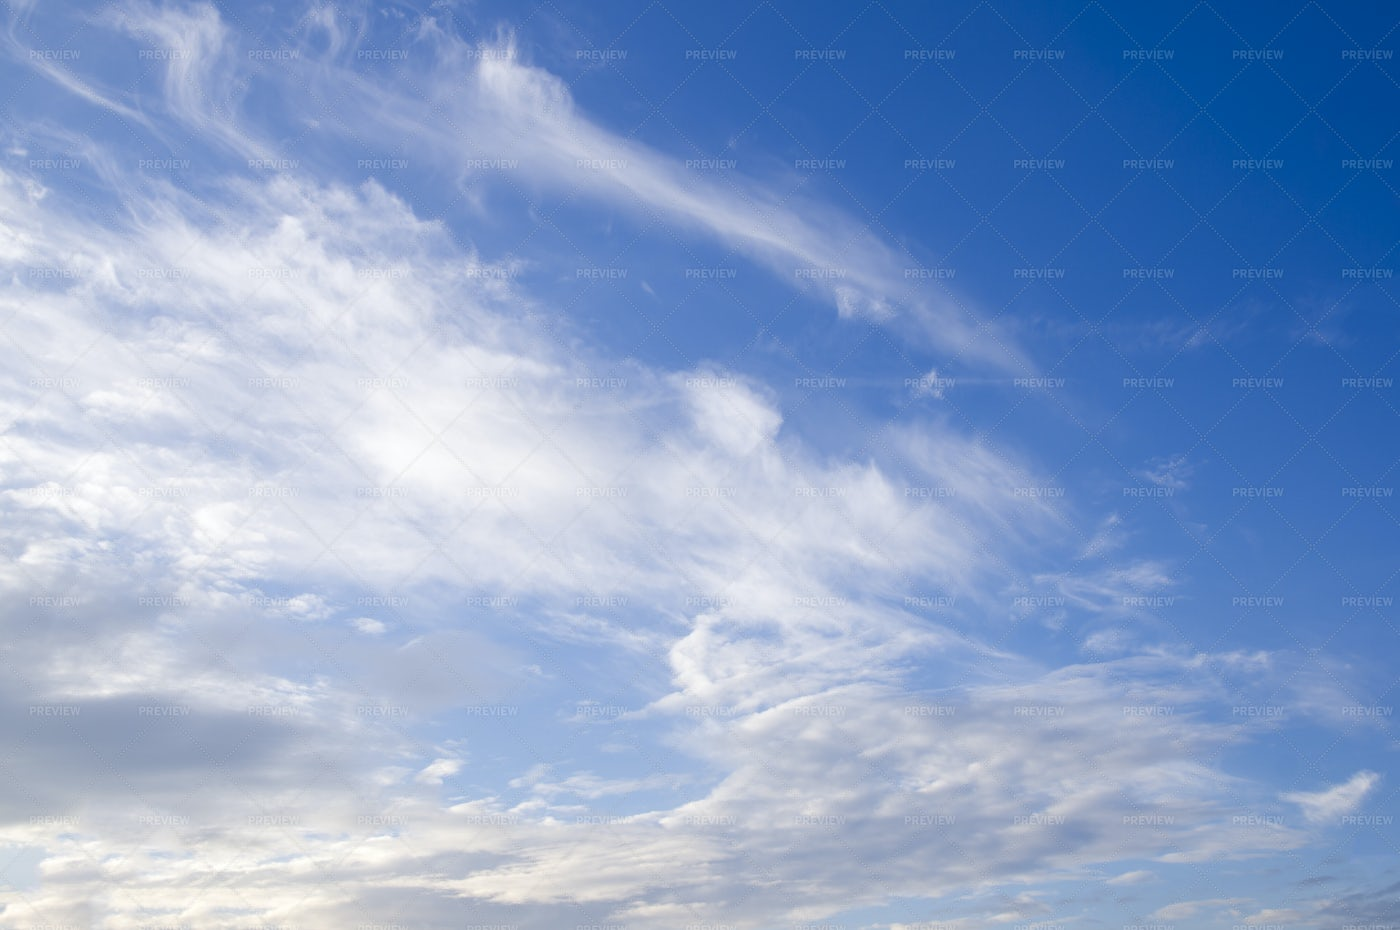 Blue Sky And White Clouds: Stock Photos